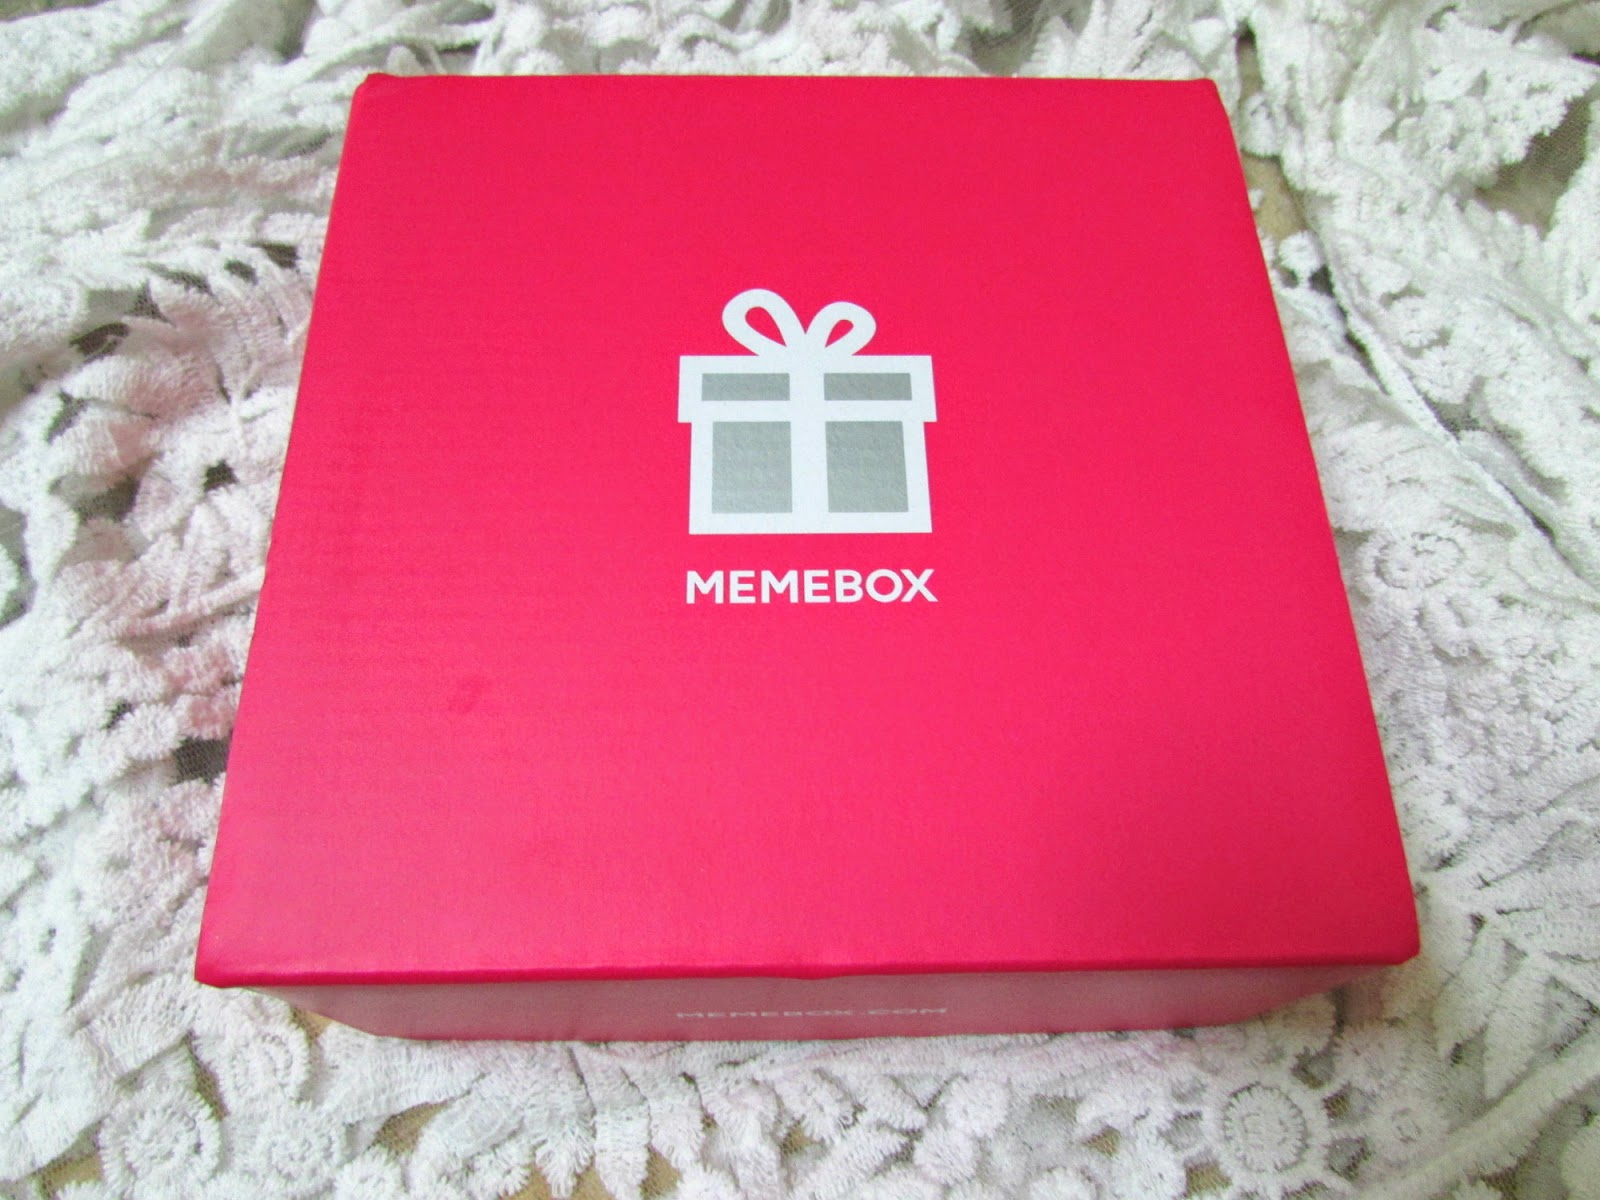 memebox coupon, memebox coupon code, memebox, memebox review, memebox shipping, memebox shipping cost , memebox india, memebox review india , memebox unboxing, memebox unboxing and review, memebox global , memebox scentbox unboxing , memebox scentbox , memebox scentbox review, memebox scentbox #4 , memebox scentbox unboxing,memebox scentbox peice, memebox price